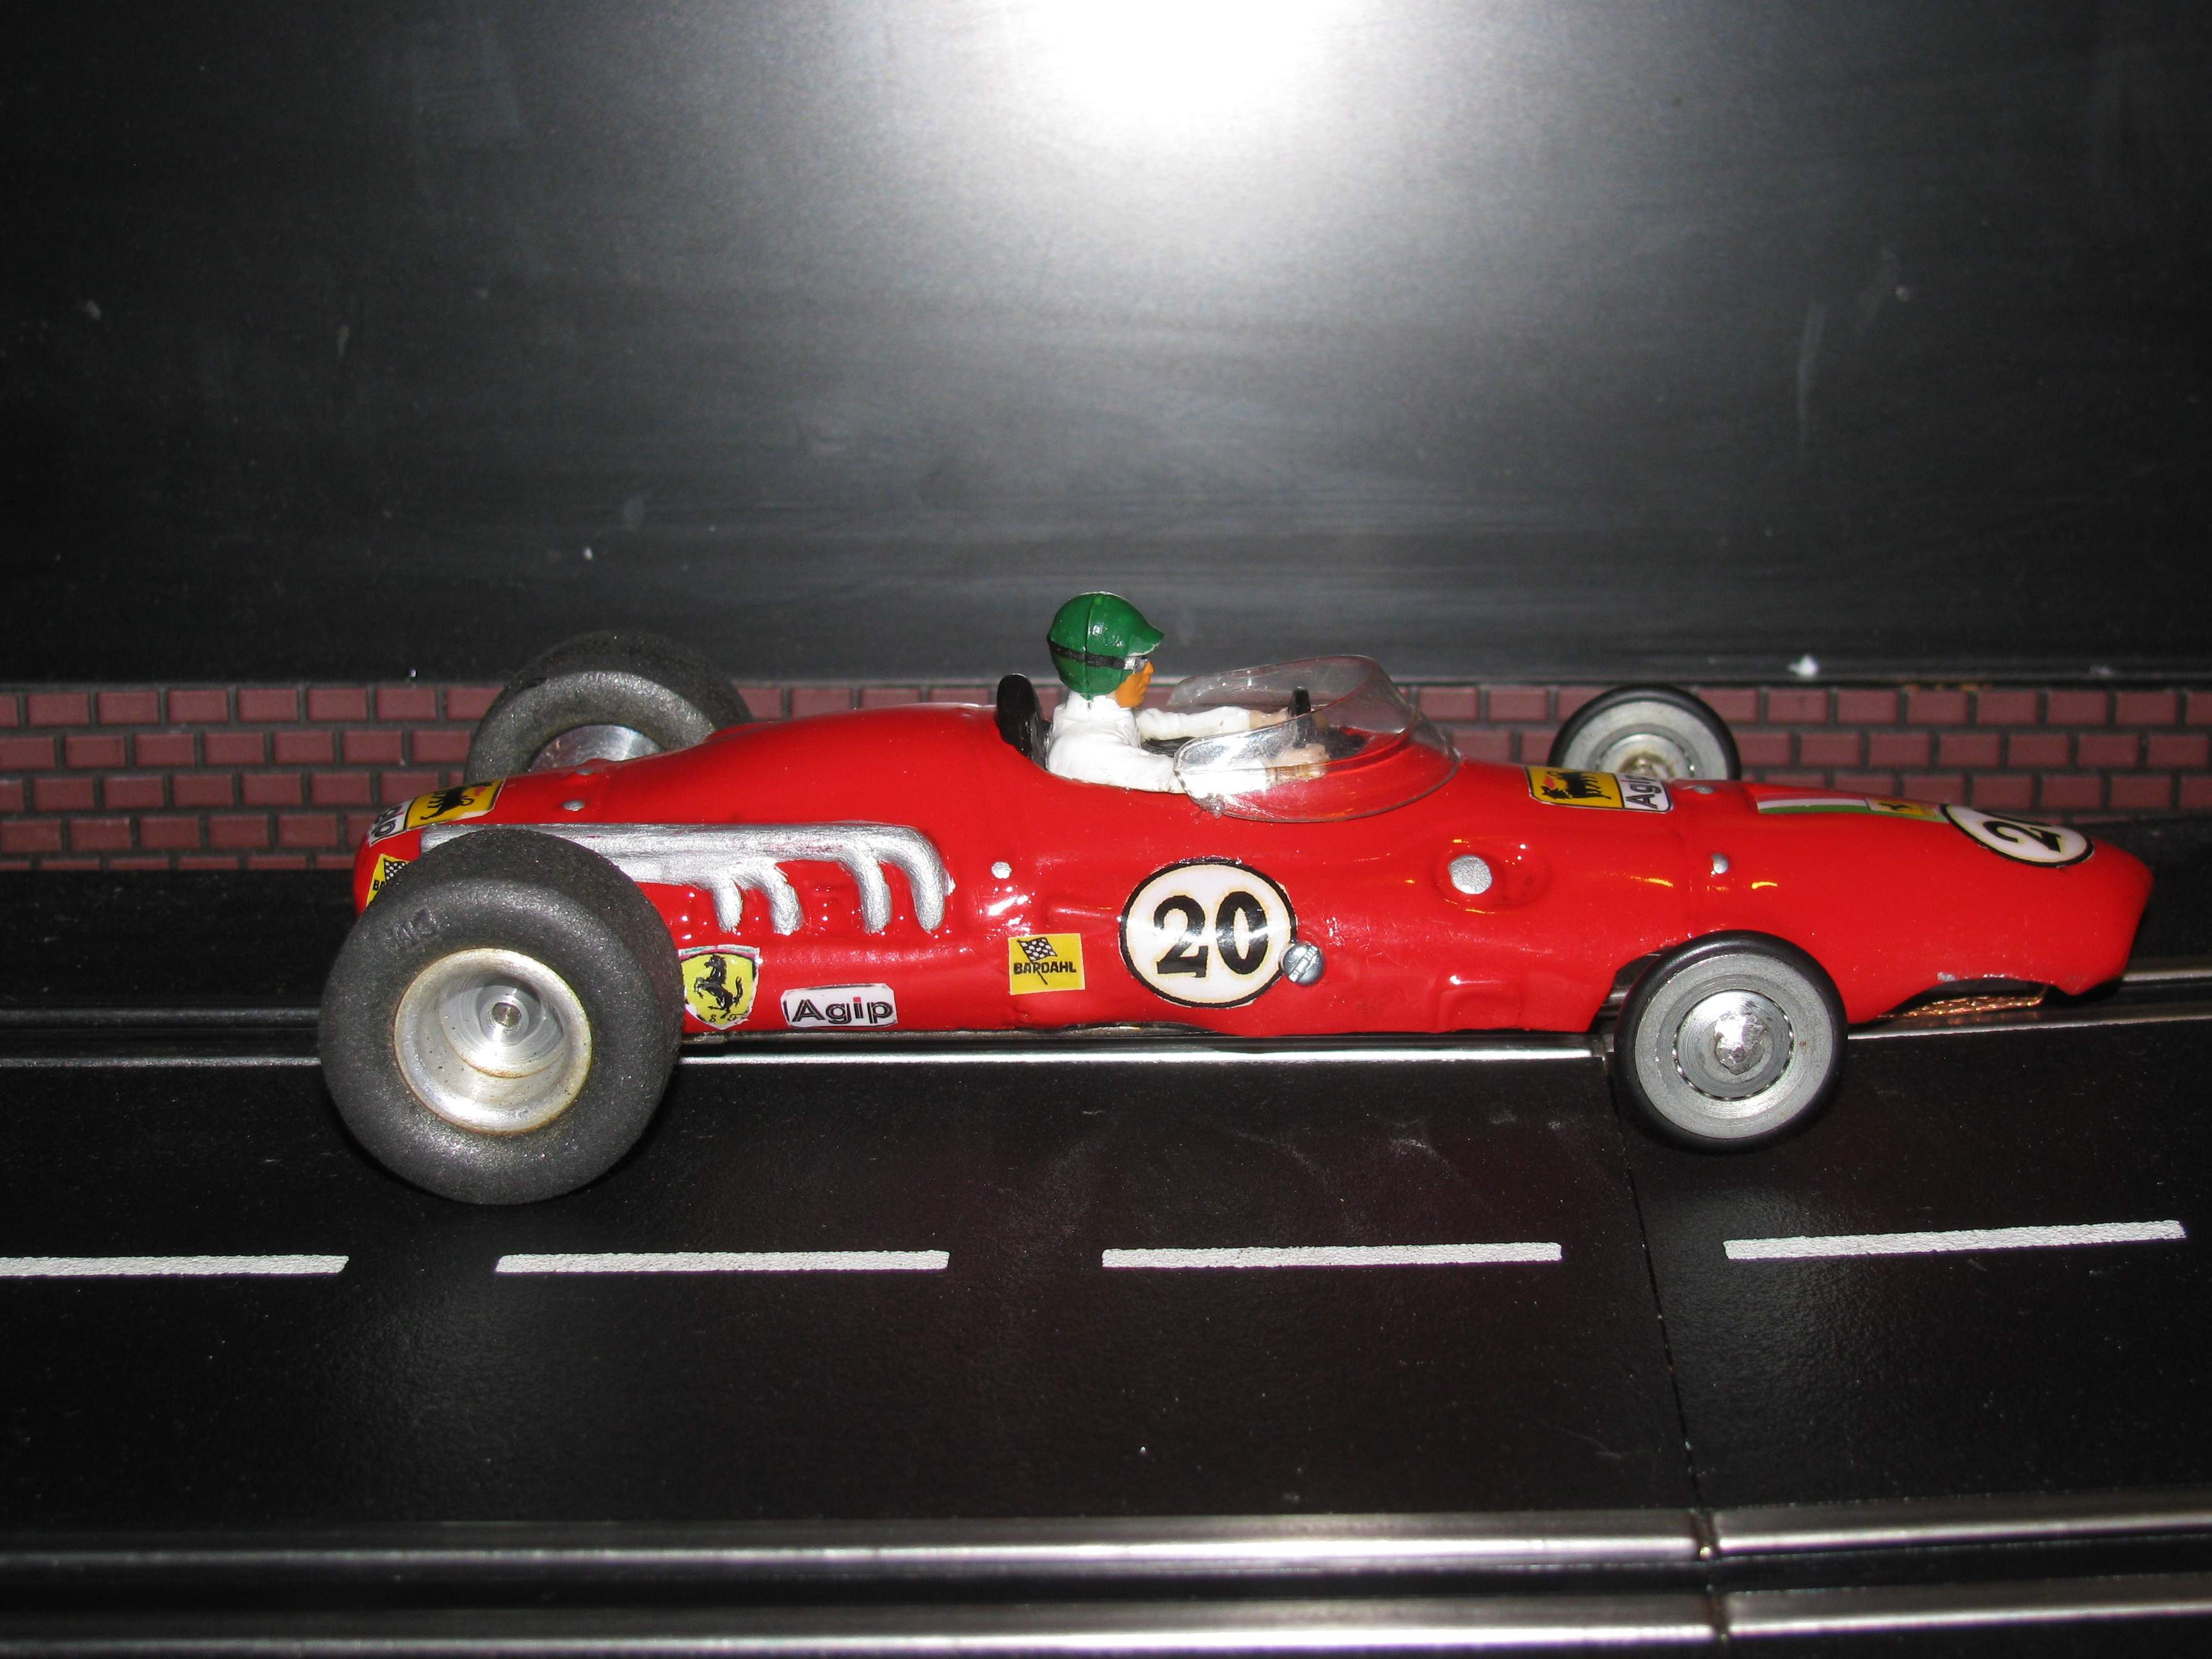 * SOLD * Vintage International Industries Ferrari Formula One Slot Car 1/24 Scale